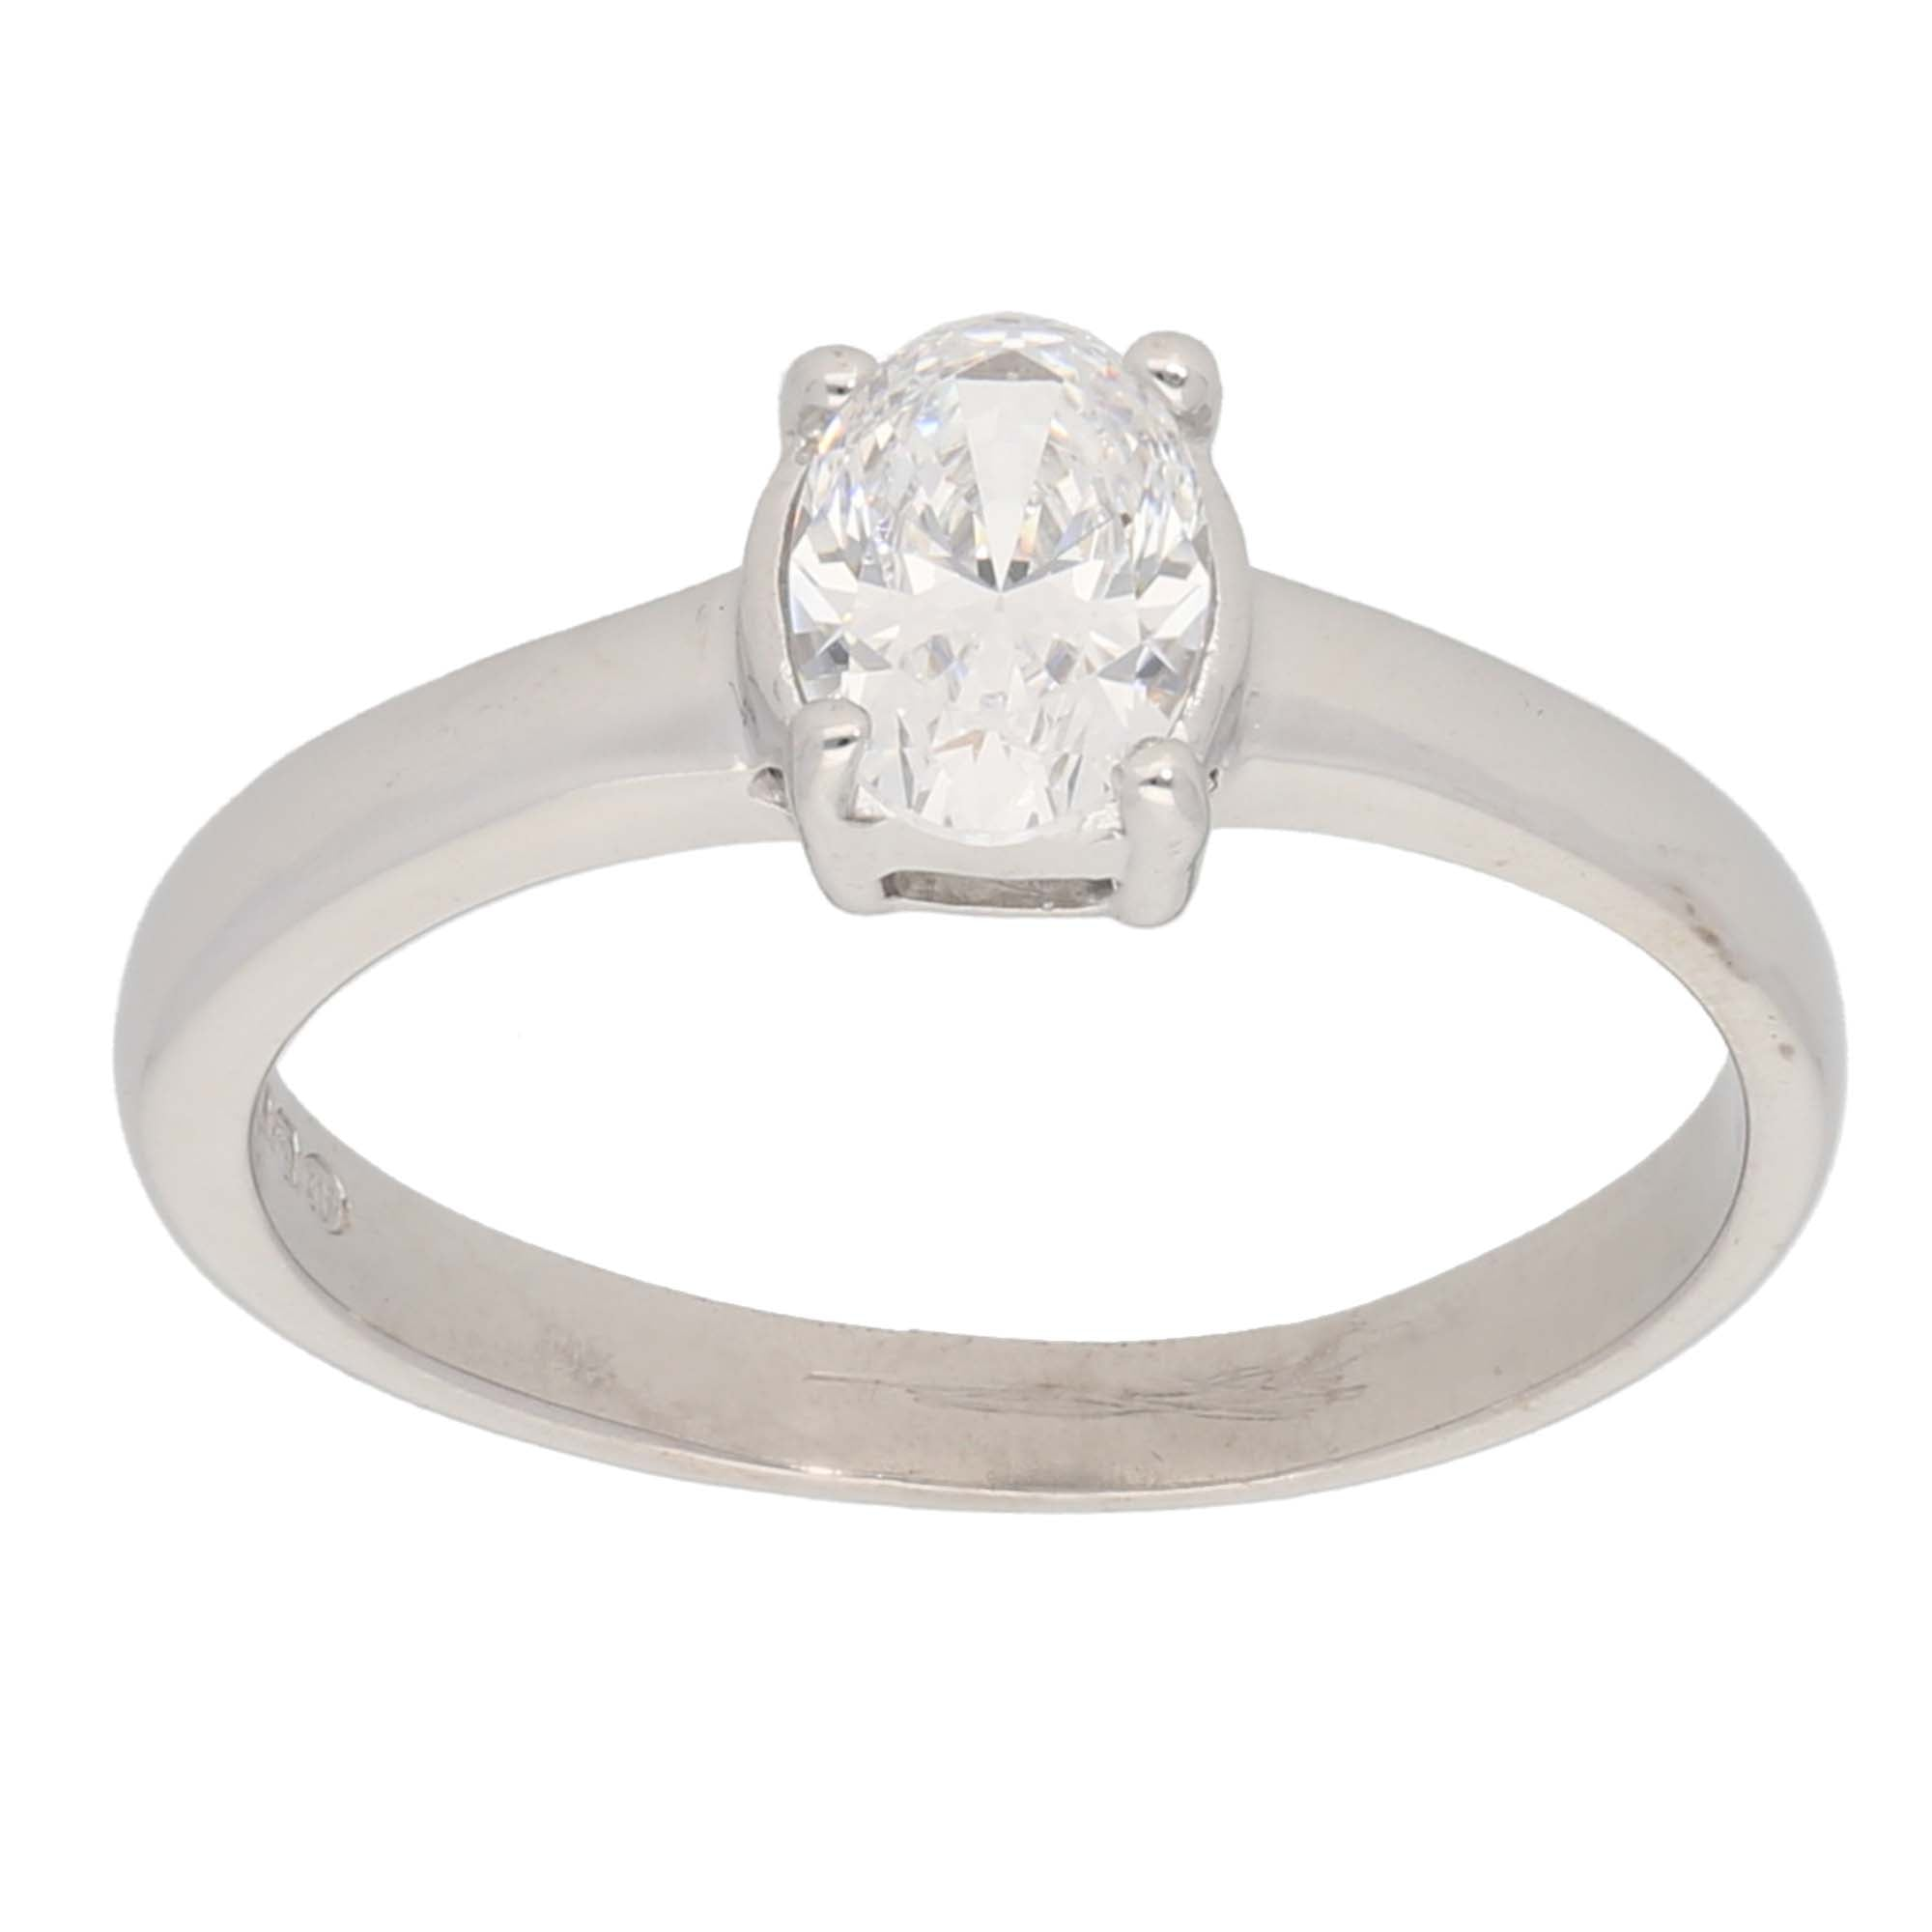 18ct White Gold Cubic Zirconia Ladies Solitaire Ring Size P